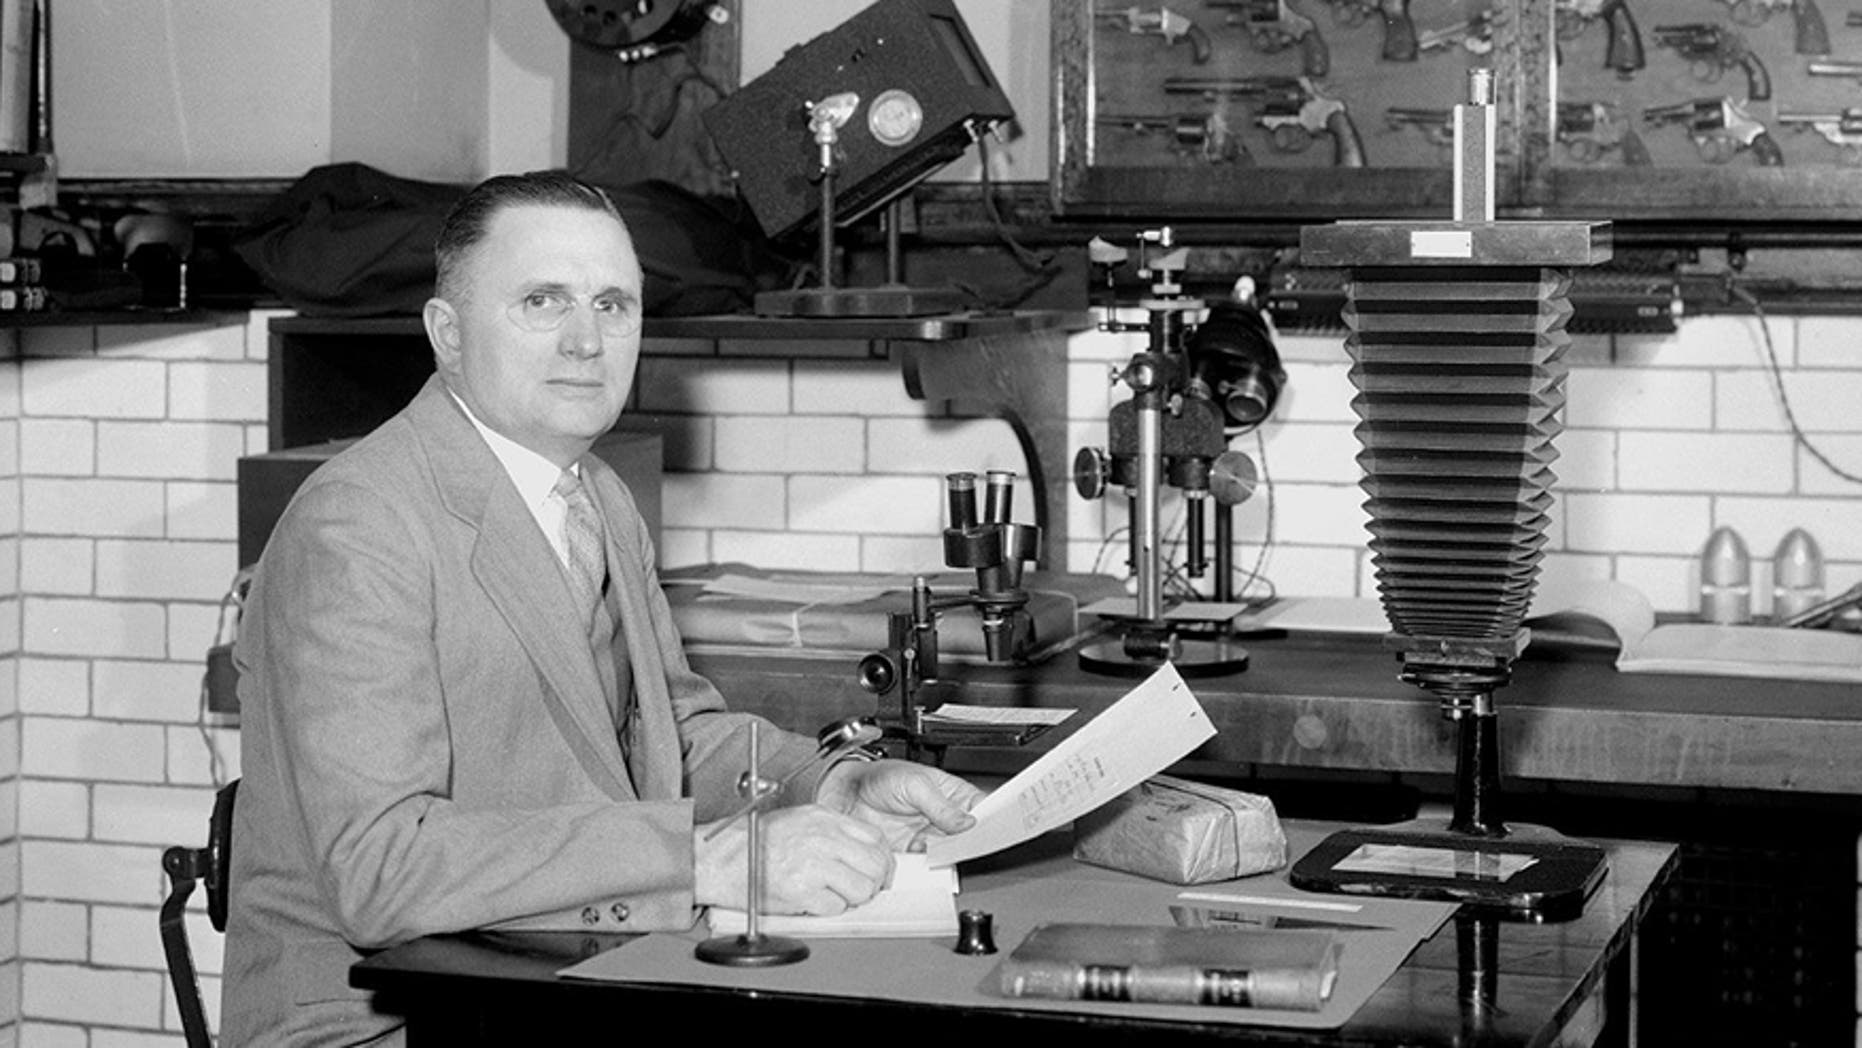 Wilmer Souder in his laboratory at the National Bureau of Standards in Washington, D.C., April 11, 1935. (Credit: NBS/NIST; source: NARA)